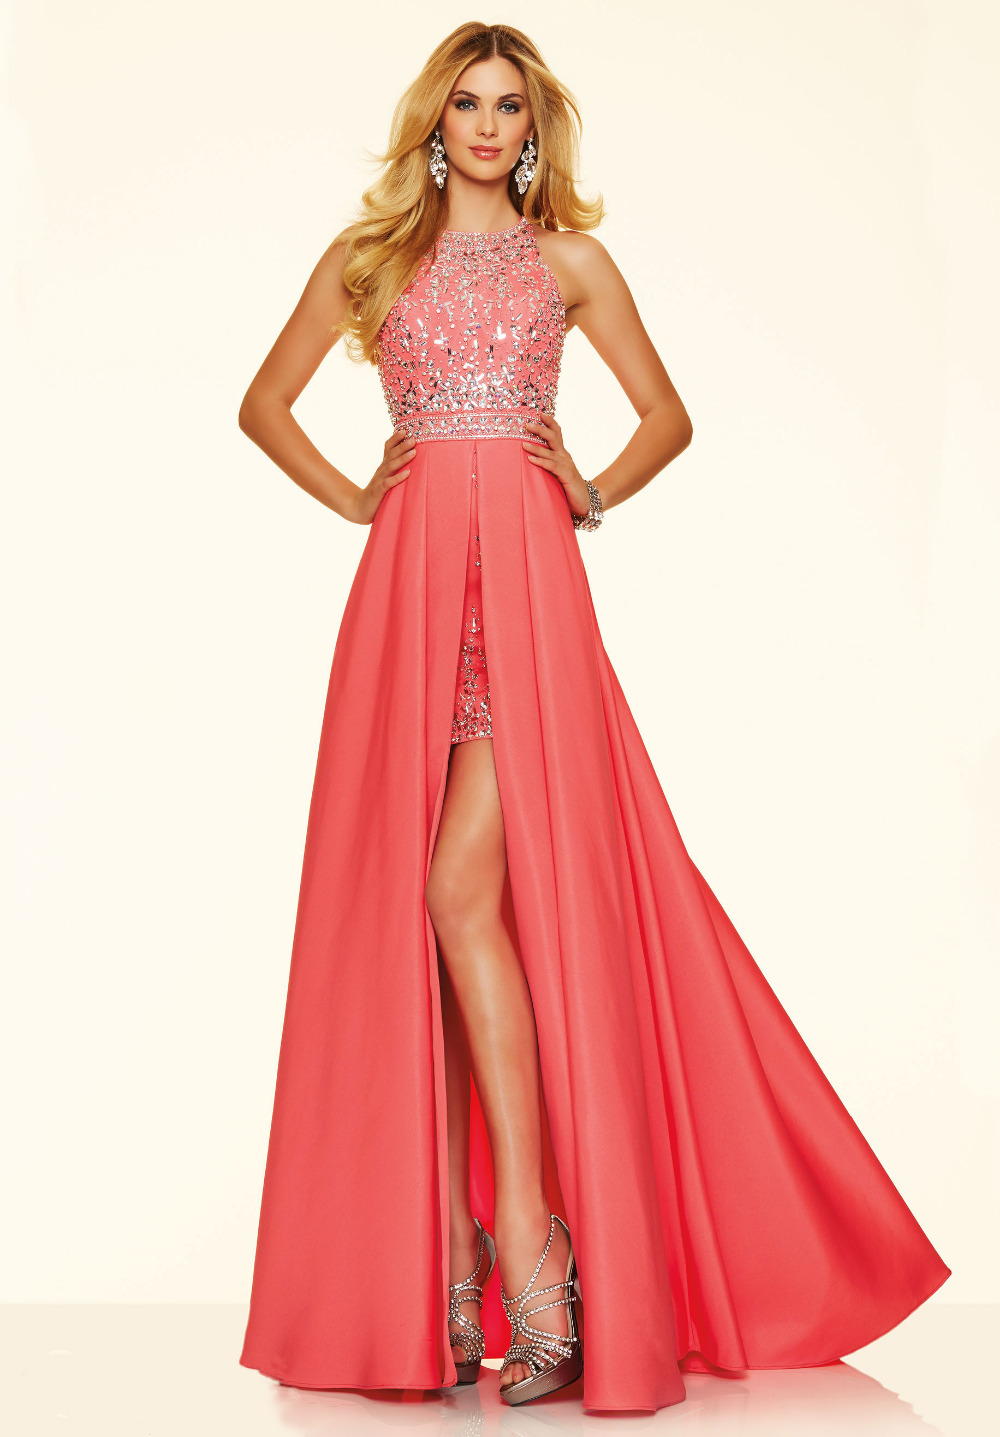 2016 New Listing Jewel Neck Off the Shoulder Peach Mermaid Prom Dresses Opulent Beading Chic Stylish Short Dress with Long Train(China (Mainland))